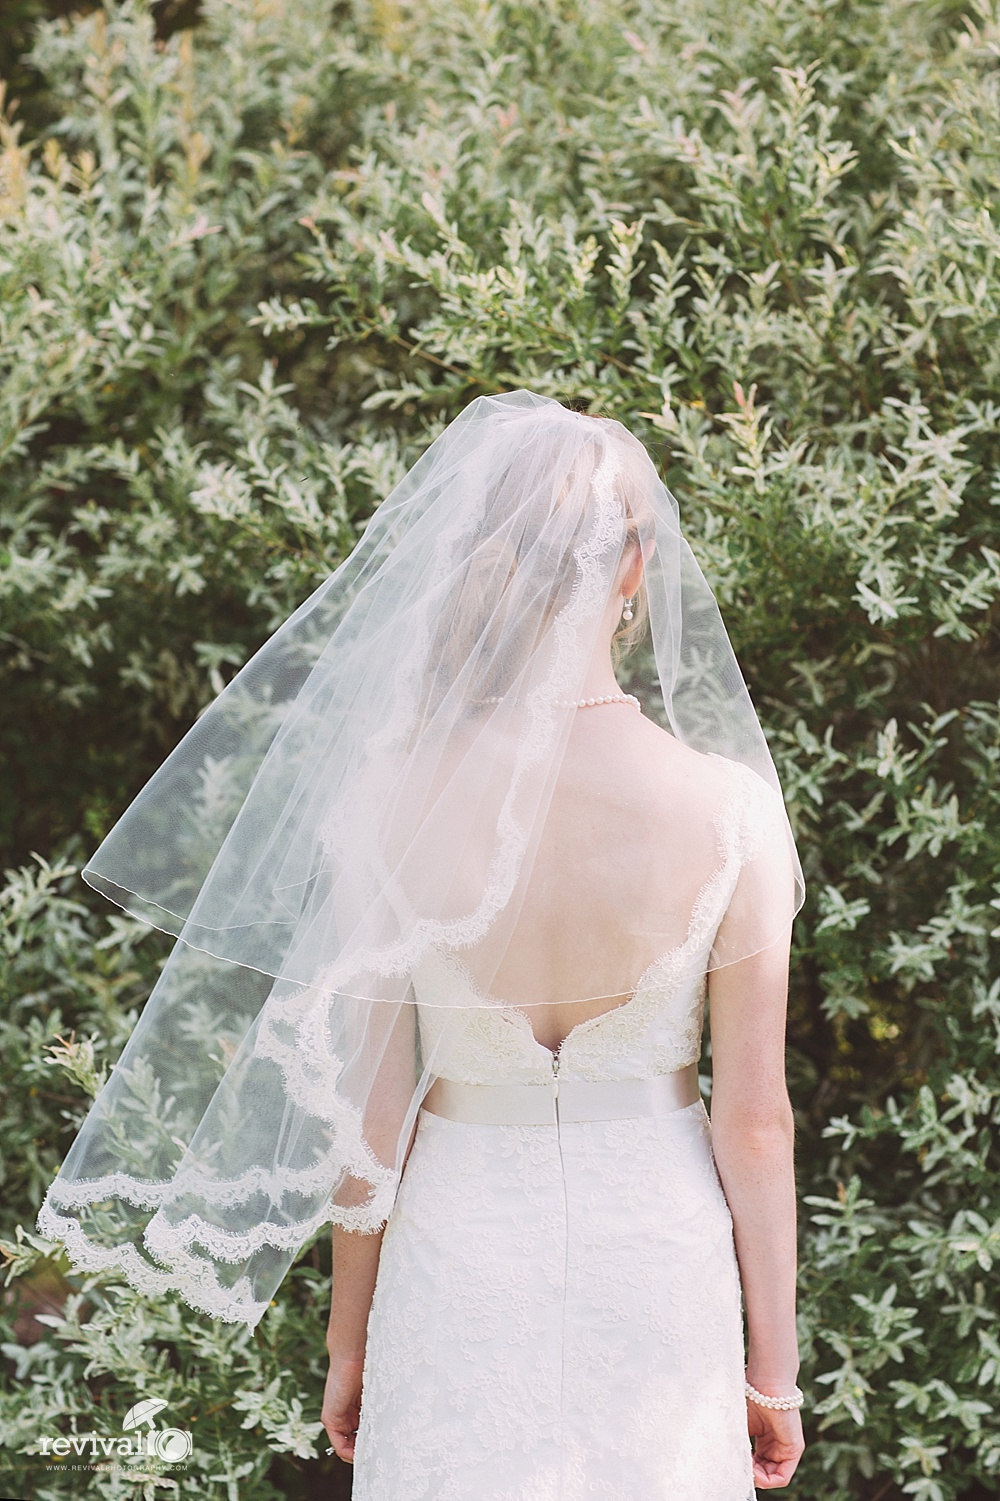 5 Wedding Dress Tips (to finding the dress that is both lovely, AND comfortable)